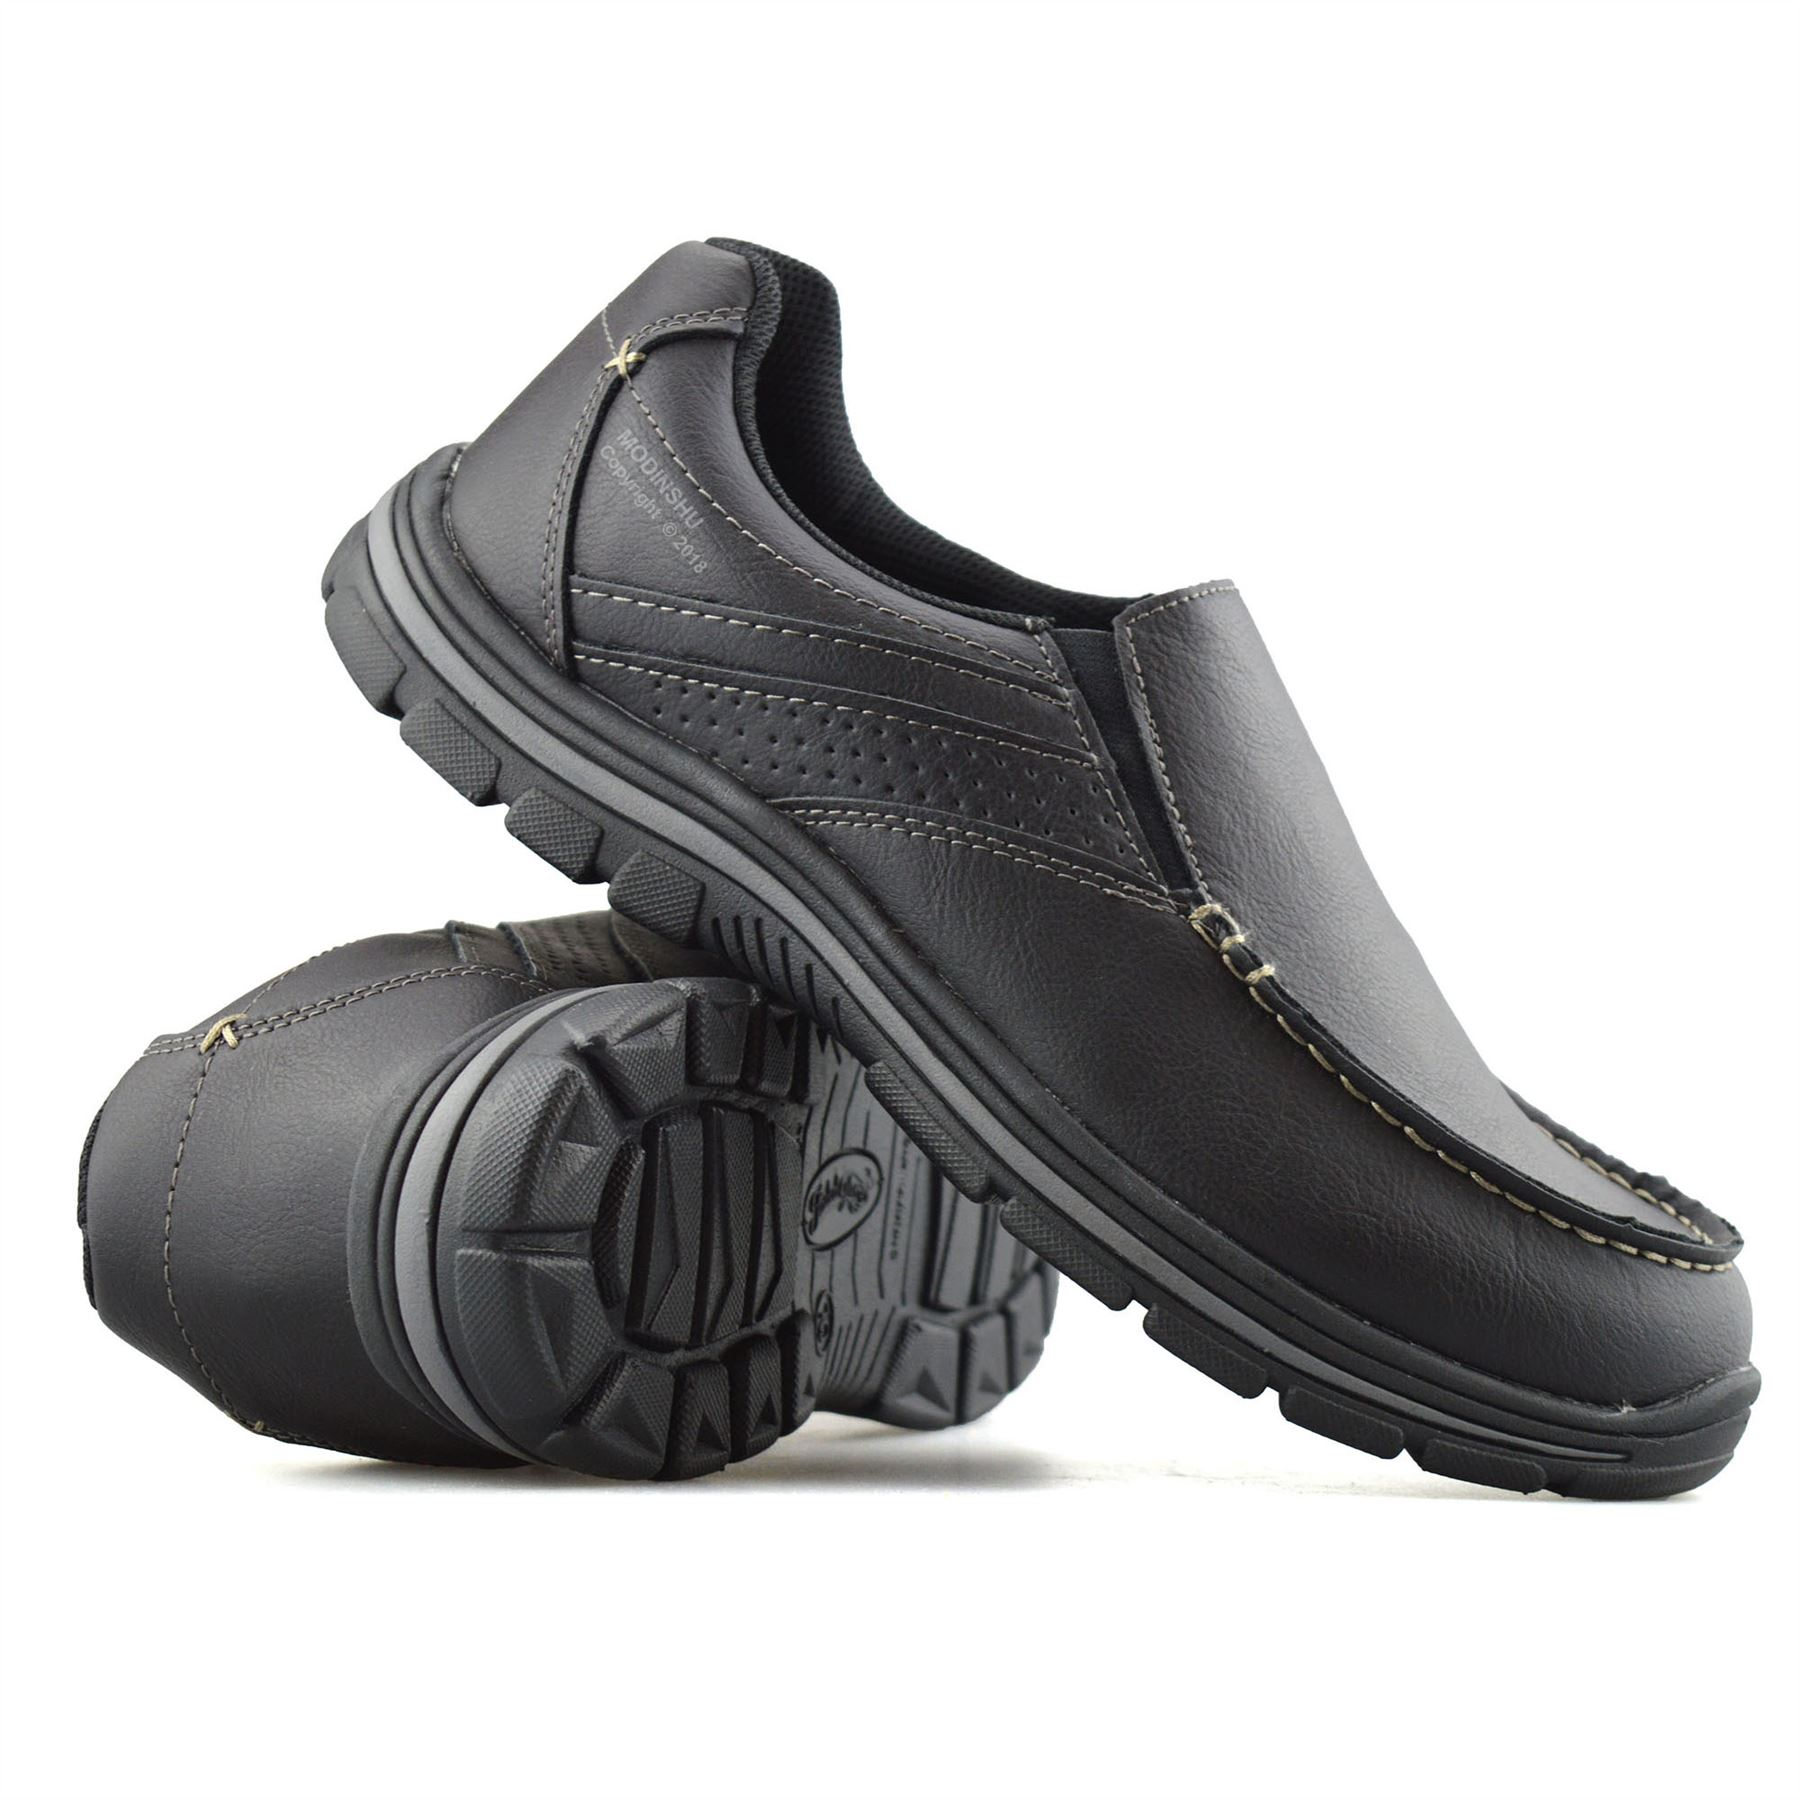 Mens-Casual-Memory-Foam-Slip-On-Walking-Moccasin-Loafers-Driving-Boat-Shoes-Size thumbnail 17